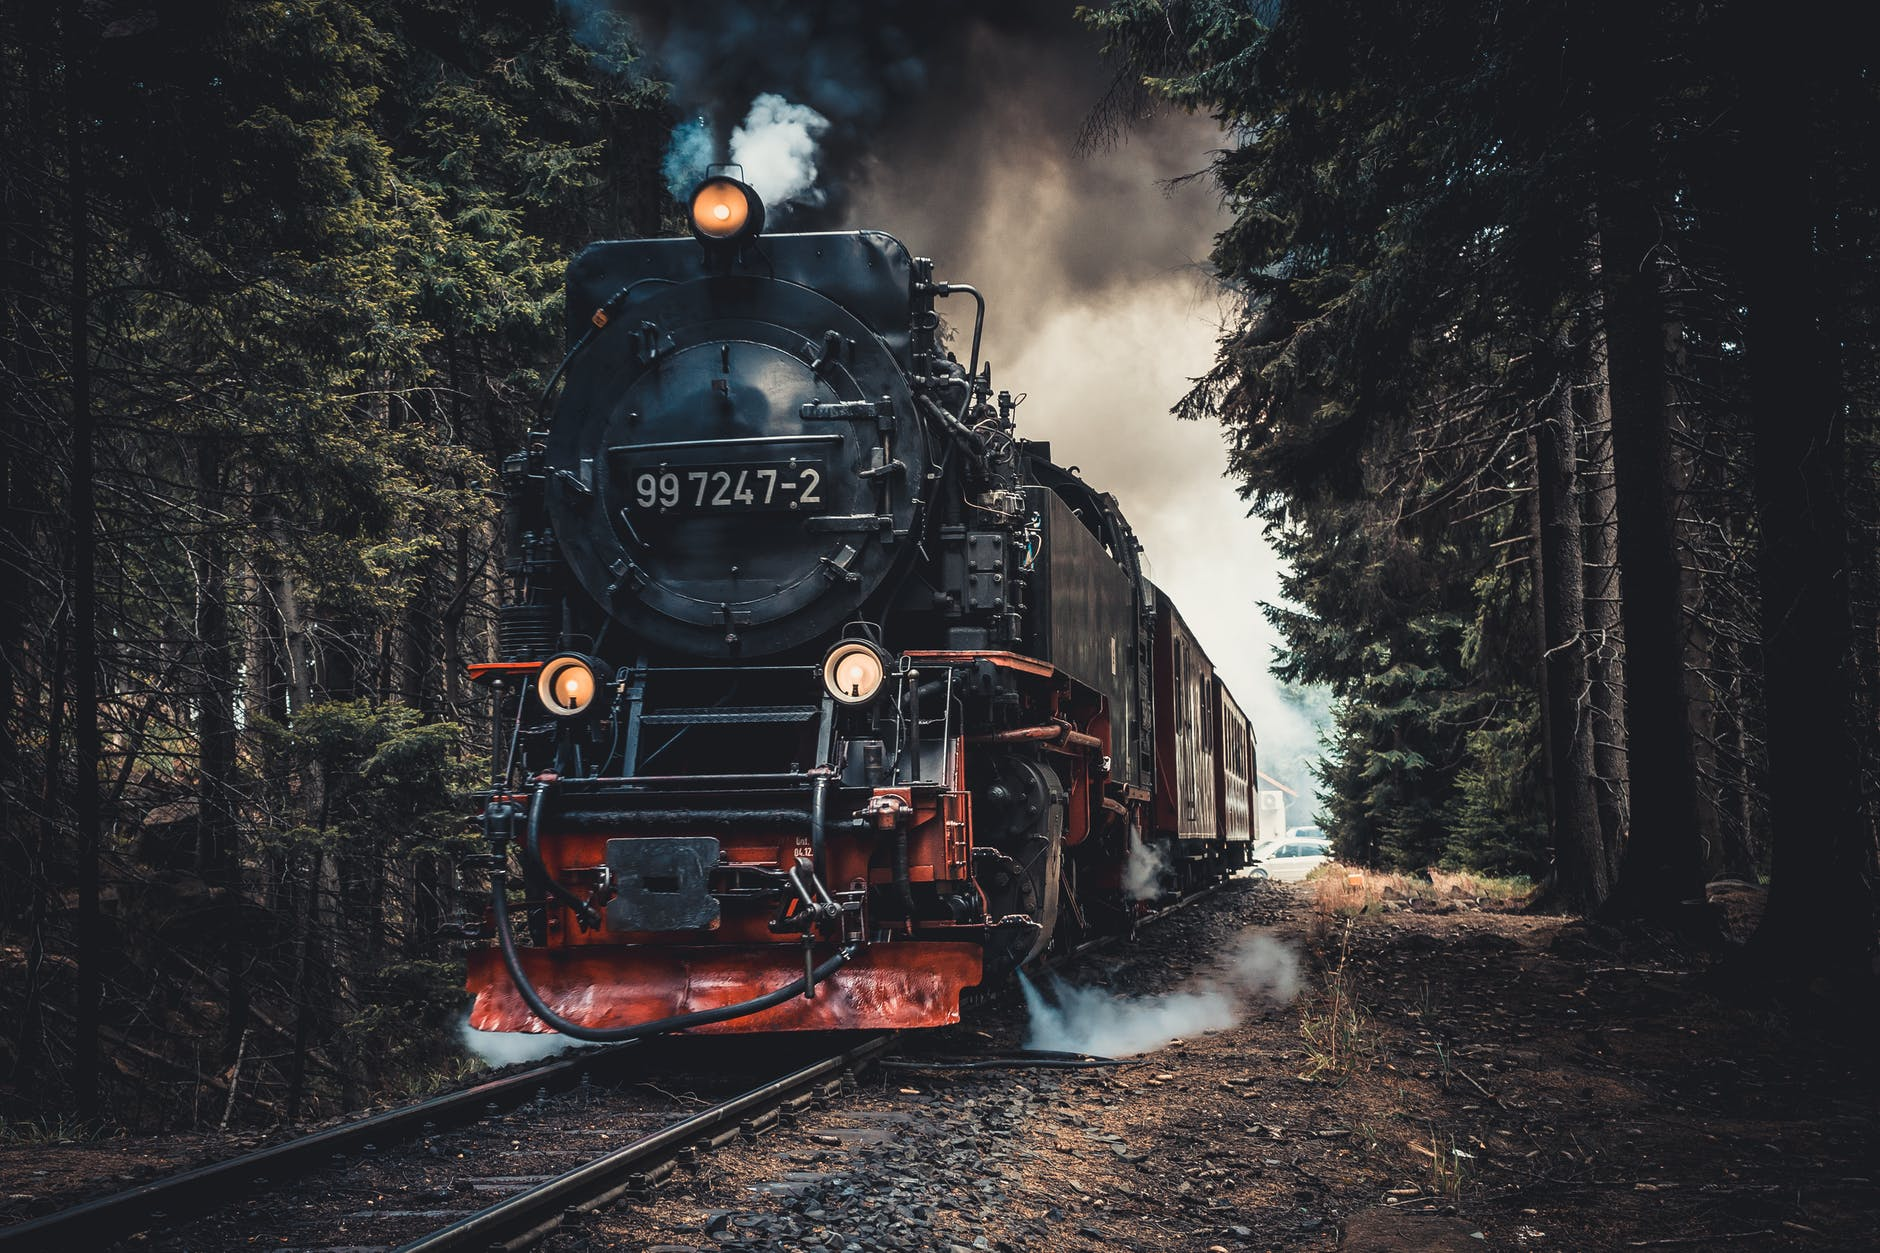 Steam engine riding tracks through the forest